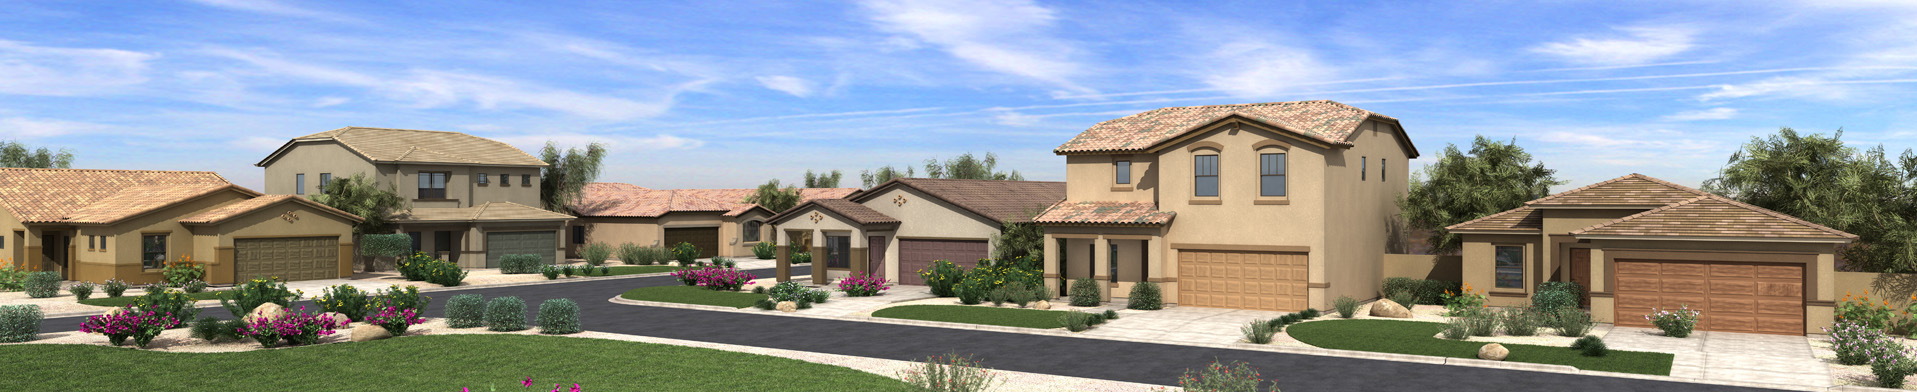 Ironwood Crossing By Fulton Homes